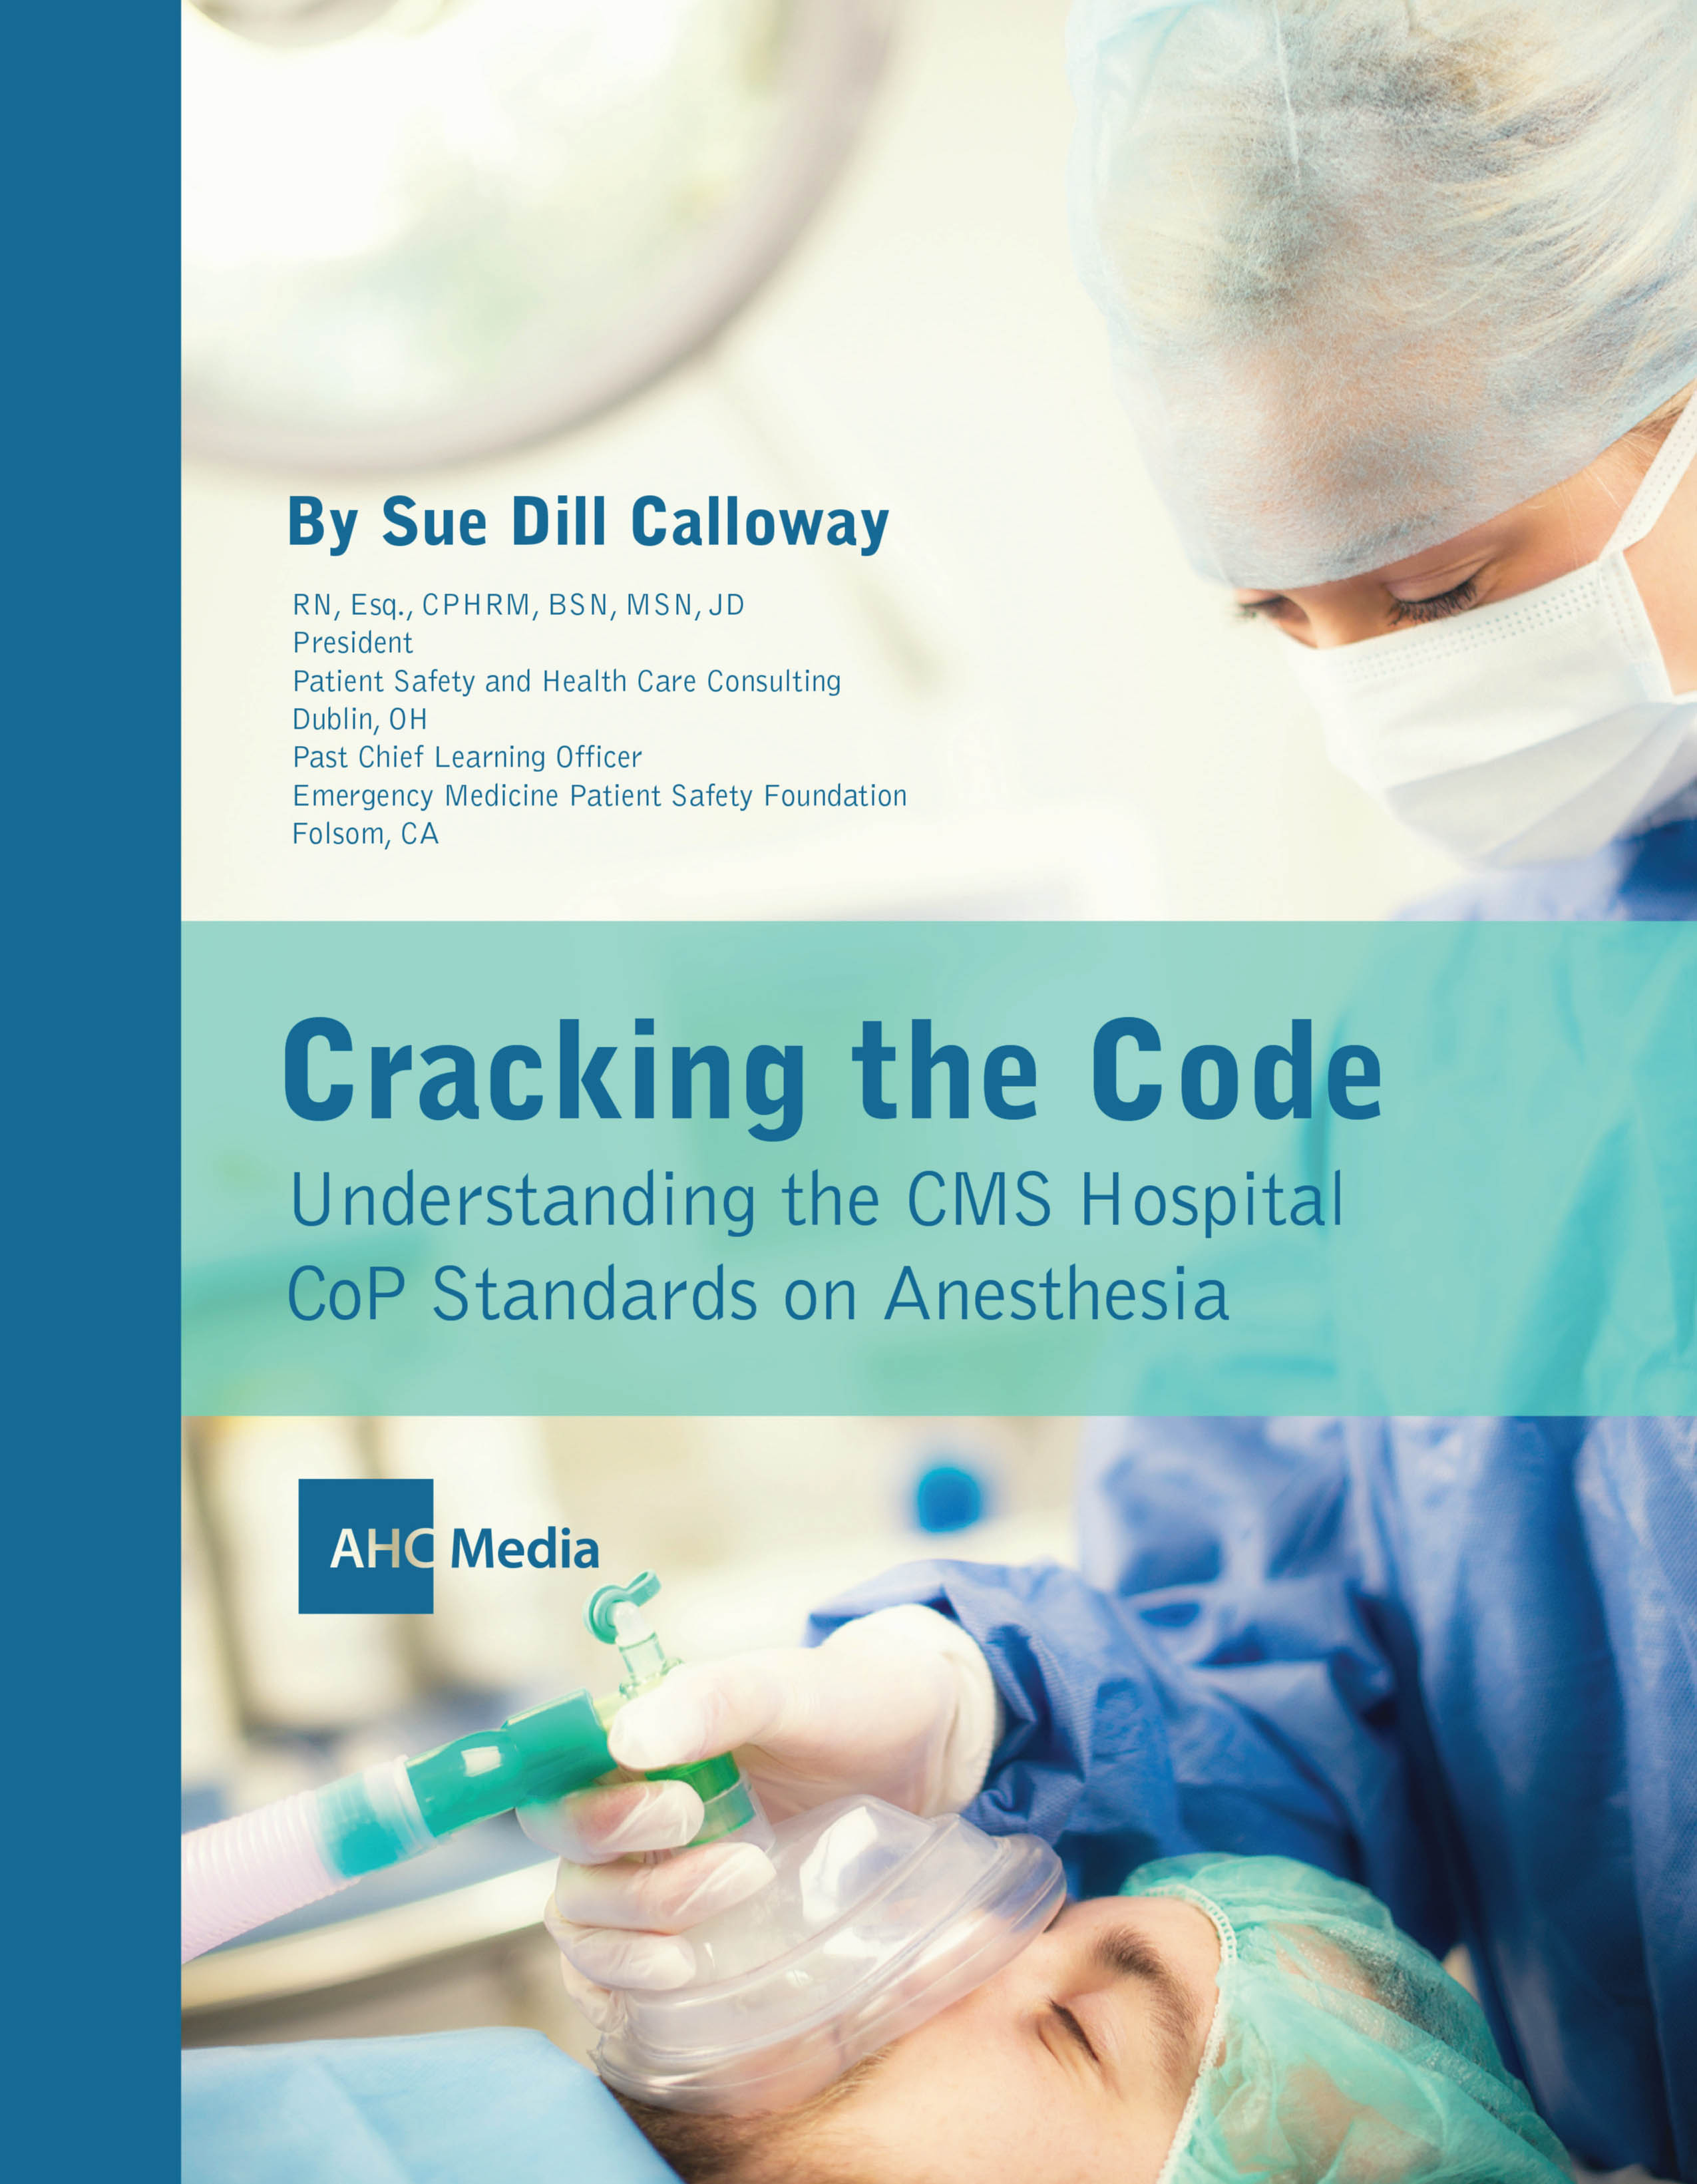 Cracking the Code: Understanding the CMS Hospital CoP Standards on Anesthesia